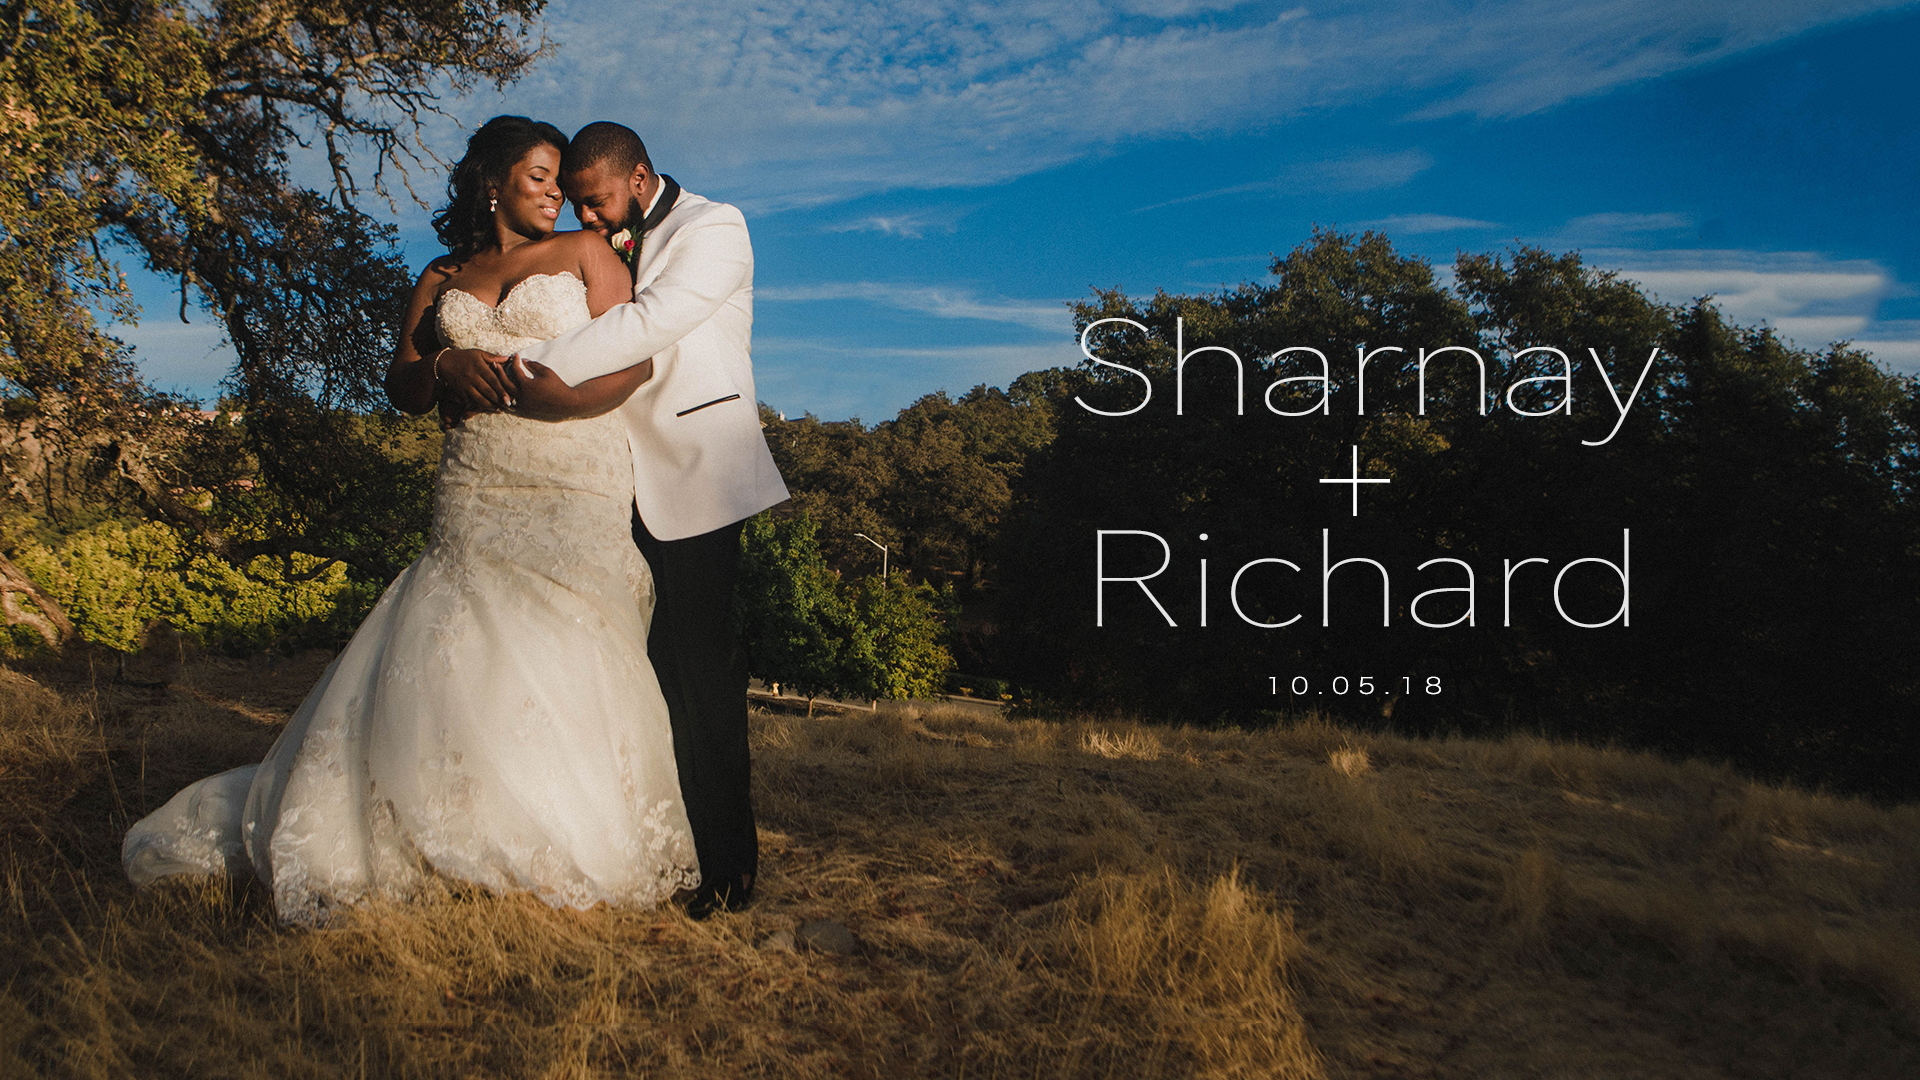 Sharnay + Richard | Rocklin, California | Whitney Oaks Golf Club